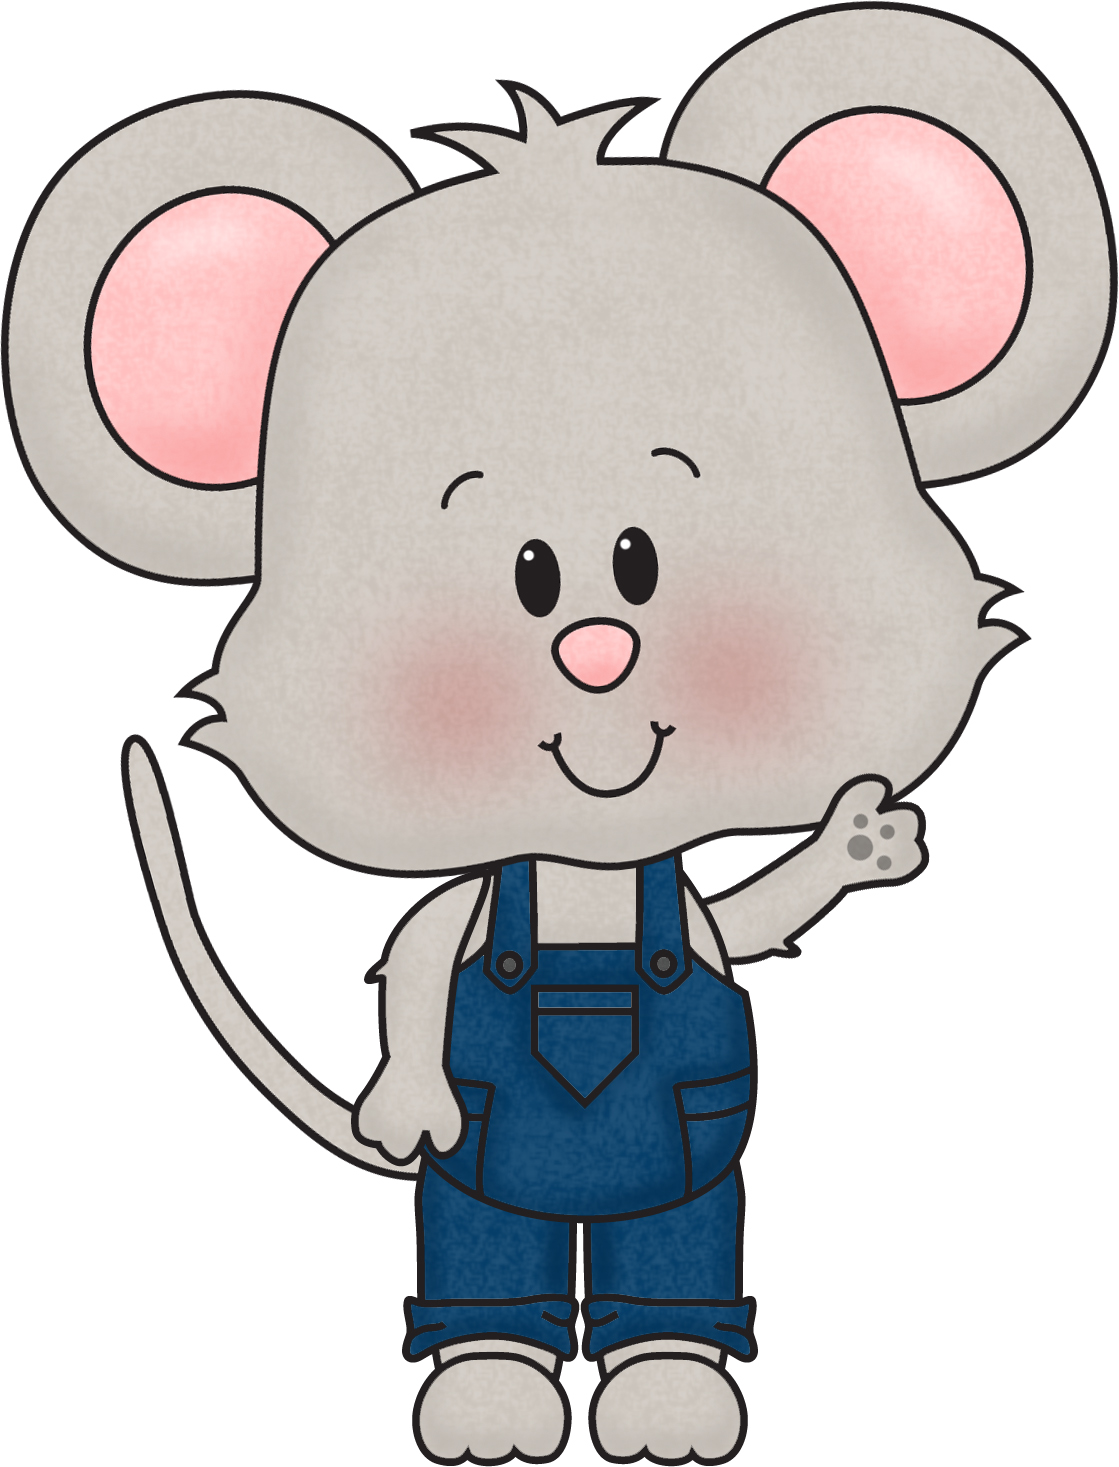 Free Cute Mouse Cliparts, Download Free Clip Art, Free Clip.